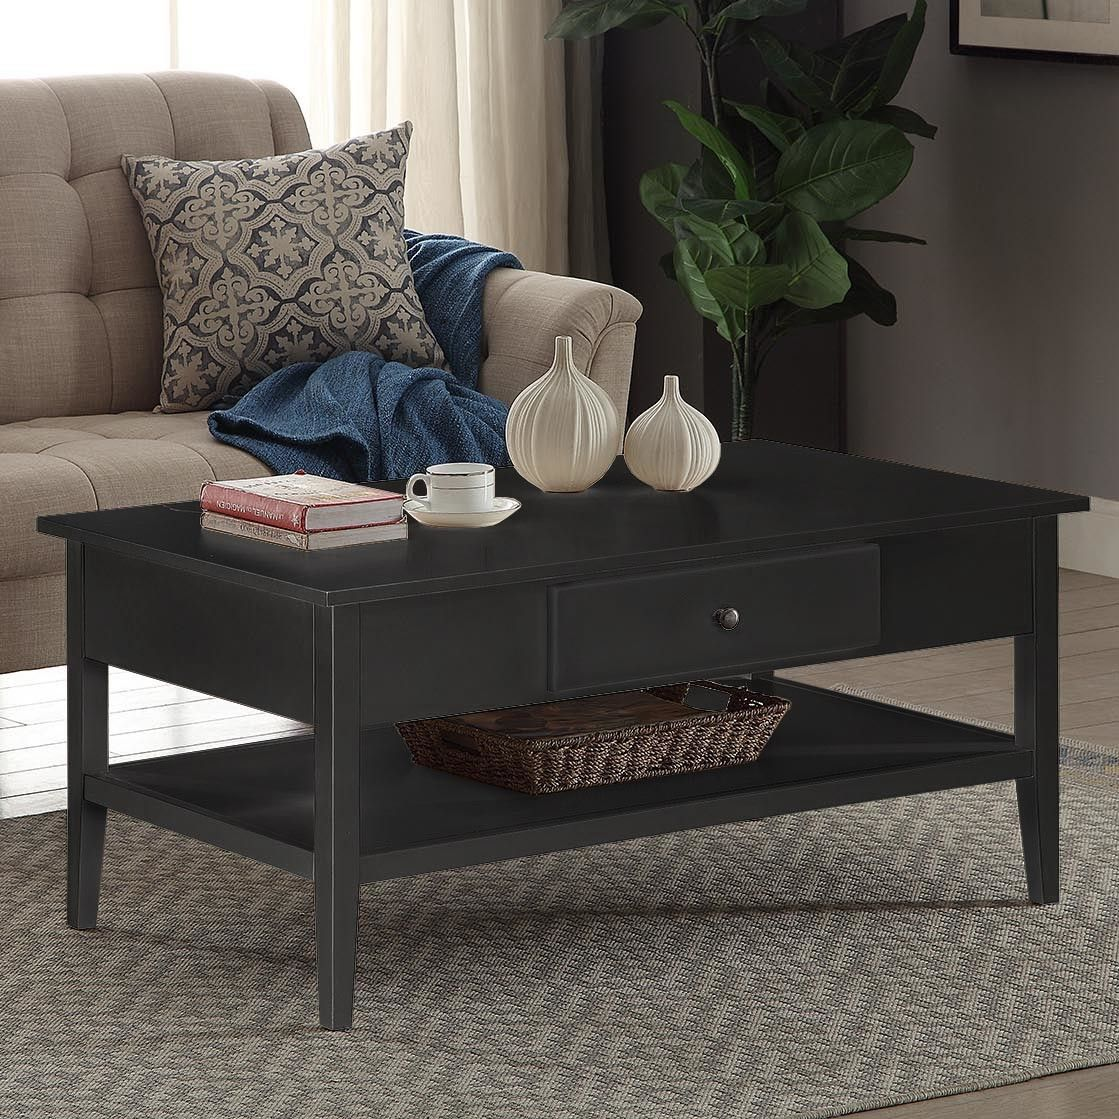 Celina Coffee Table Black Coffee Tables Wooden Coffee Table Designs Coffee Table With Storage